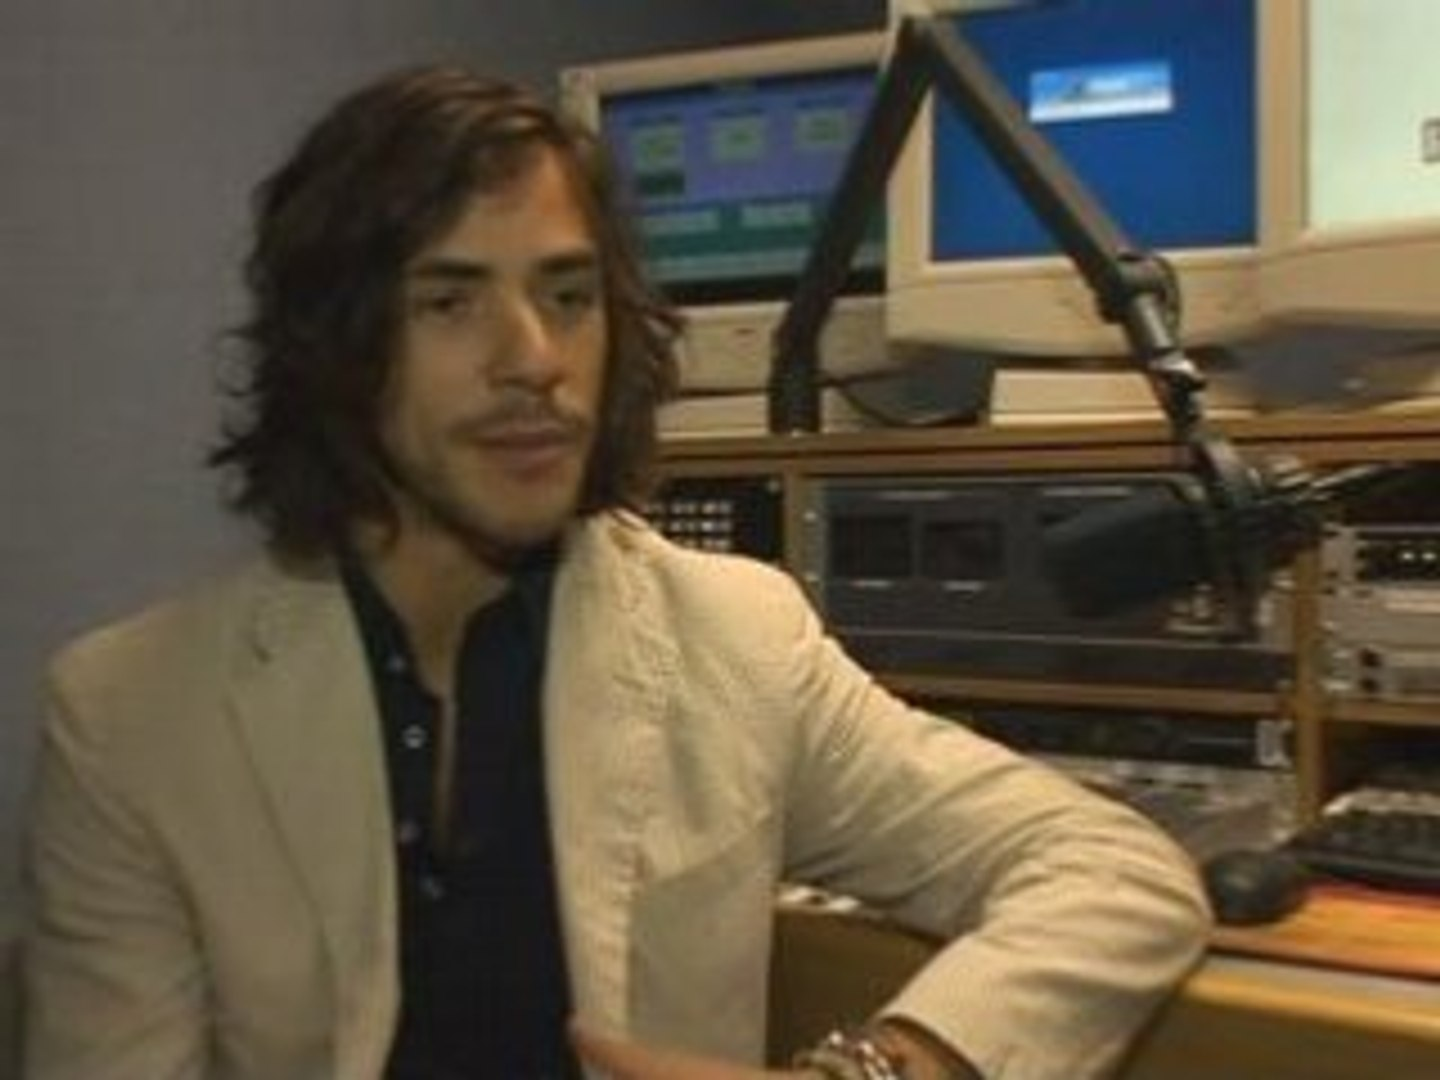 Singer Jack Savoretti on how musicians can help